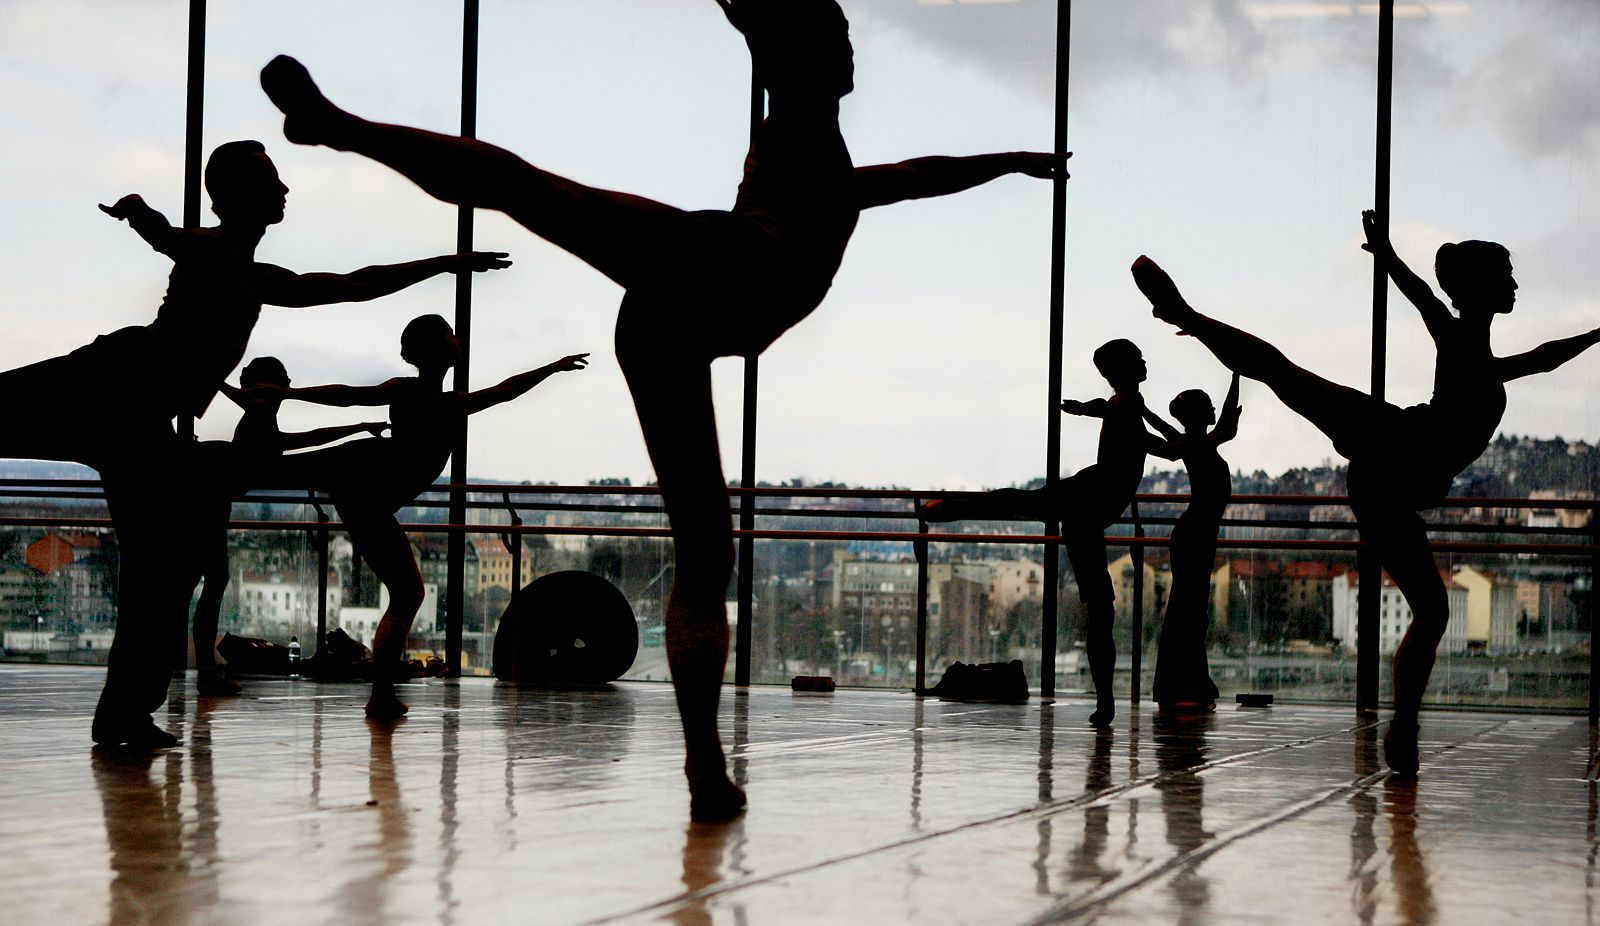 Dancers in the rehearsal space. Photo: Kim Nygård, from _Operaen_